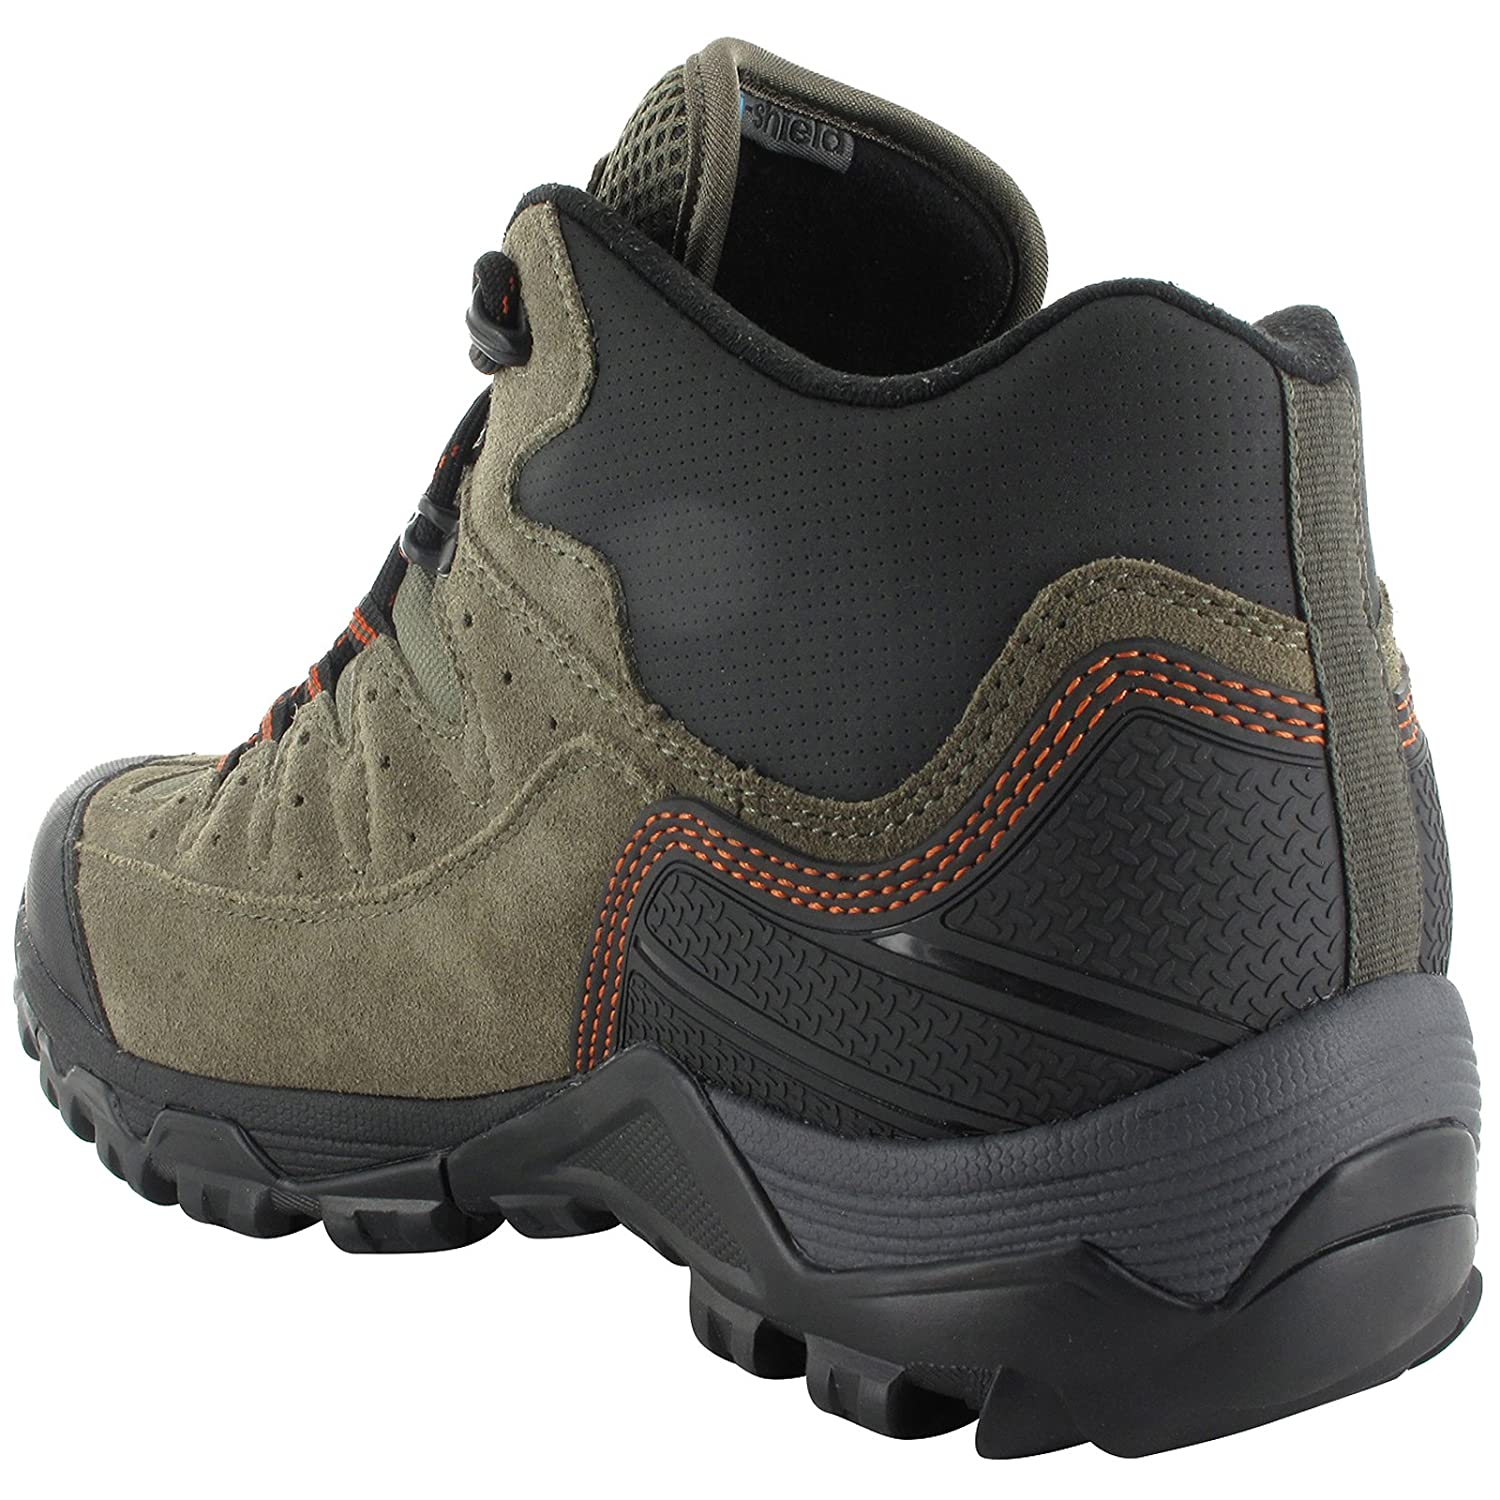 Mens HI-TEC OX Belmont Mid I WP Waterproof Michelin Sole Walking Hiking Boots-UK 13 (EU 47): Amazon.es: Zapatos y complementos